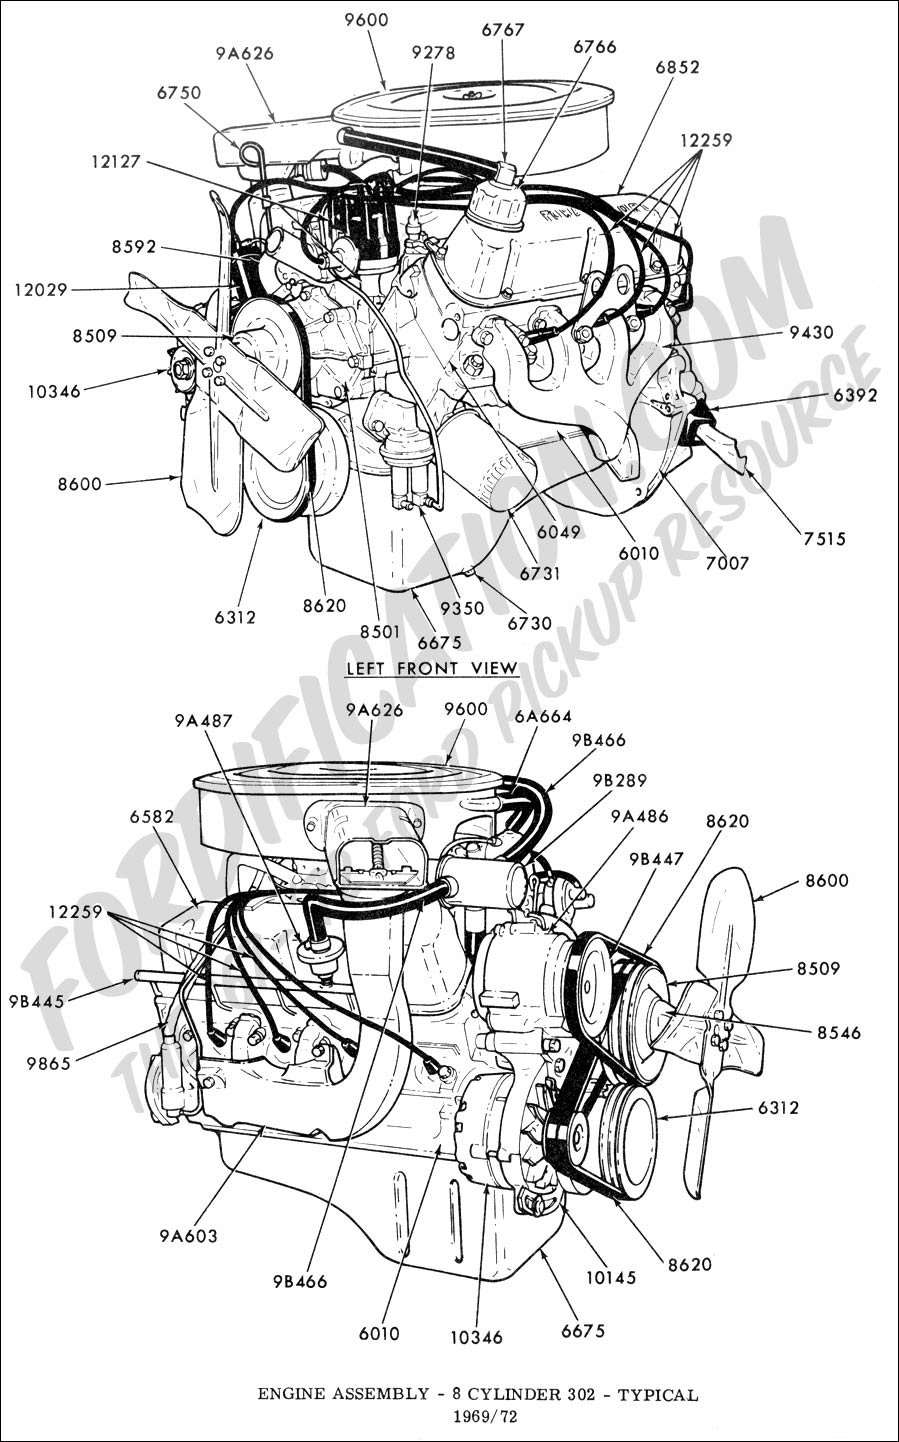 1968 Ford F 250 Truck Dist Wiring Diagram | Wiring Diagram Wiring Diagram For Ford Truck on 1968 ford truck parts, 1968 ford truck cab mount, pickup truck diagram, 1968 ford truck brochure, 1968 ford truck radio, 1968 ford truck carburetor, truck parts diagram, ford truck engine diagram, 1968 ford truck wheels, 1968 ford truck wire schematic drawing, 1968 ford truck exhaust, 1968 ford truck shop manual, 1968 ford truck transmission, ford truck rear brake diagram, 93 ford relay diagram, 1968 ford truck air cleaner,